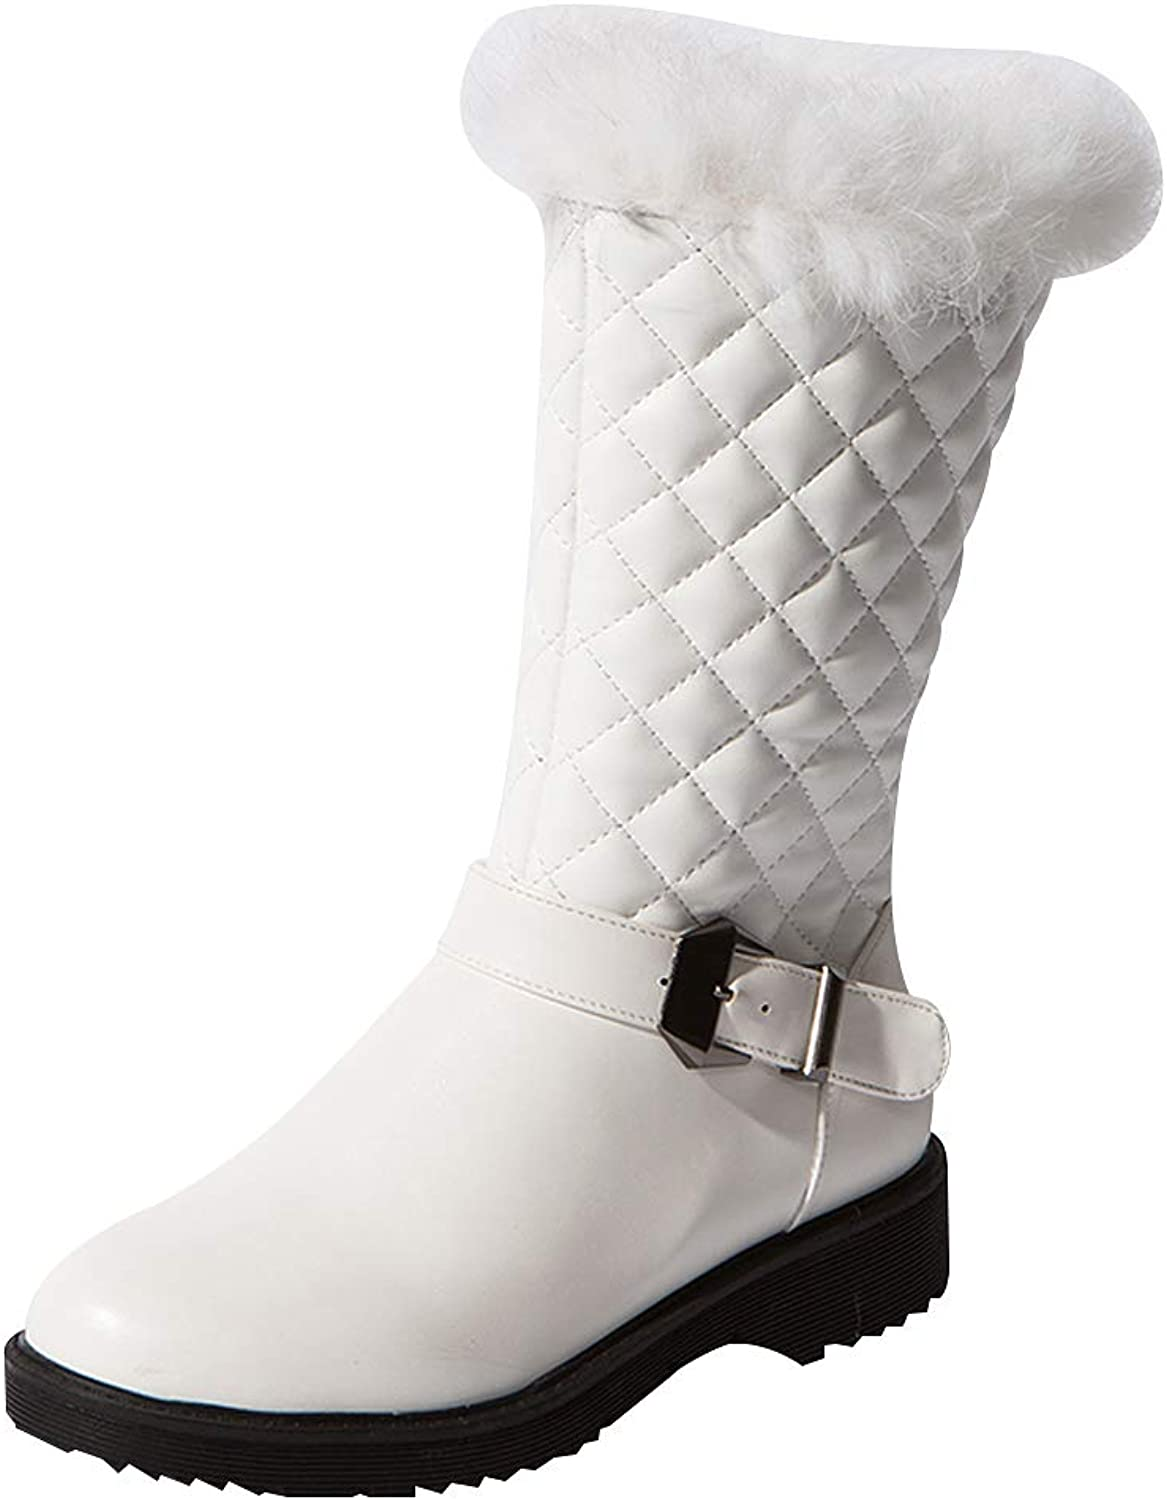 Anufer Womens Fashion Winter Water-Resistant Mid-Calf Snow Boots with Synthetic Fur Lining & Top